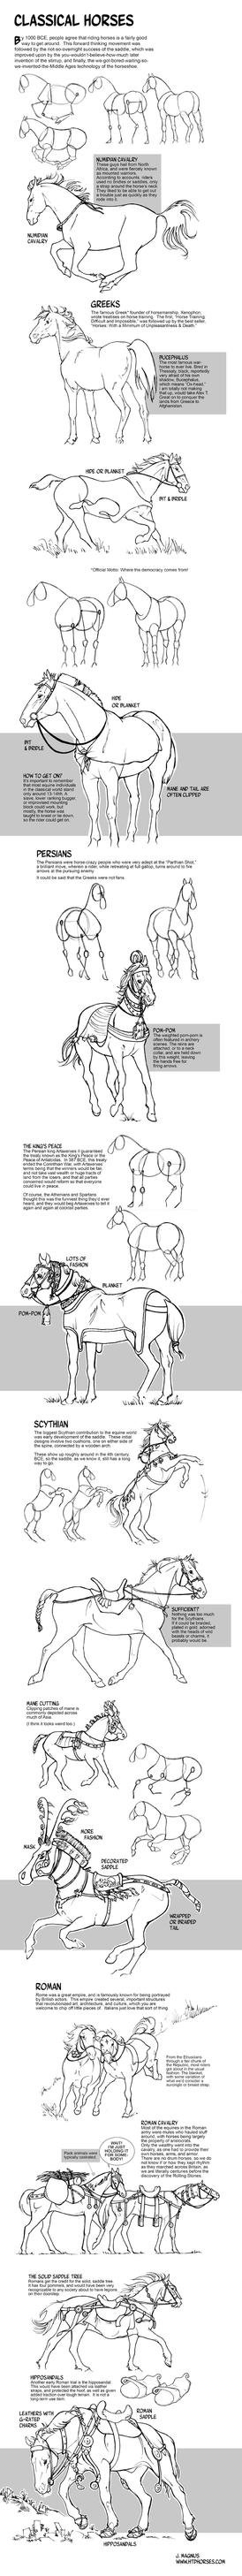 How to Draw Horses of the Classical World by sketcherjak